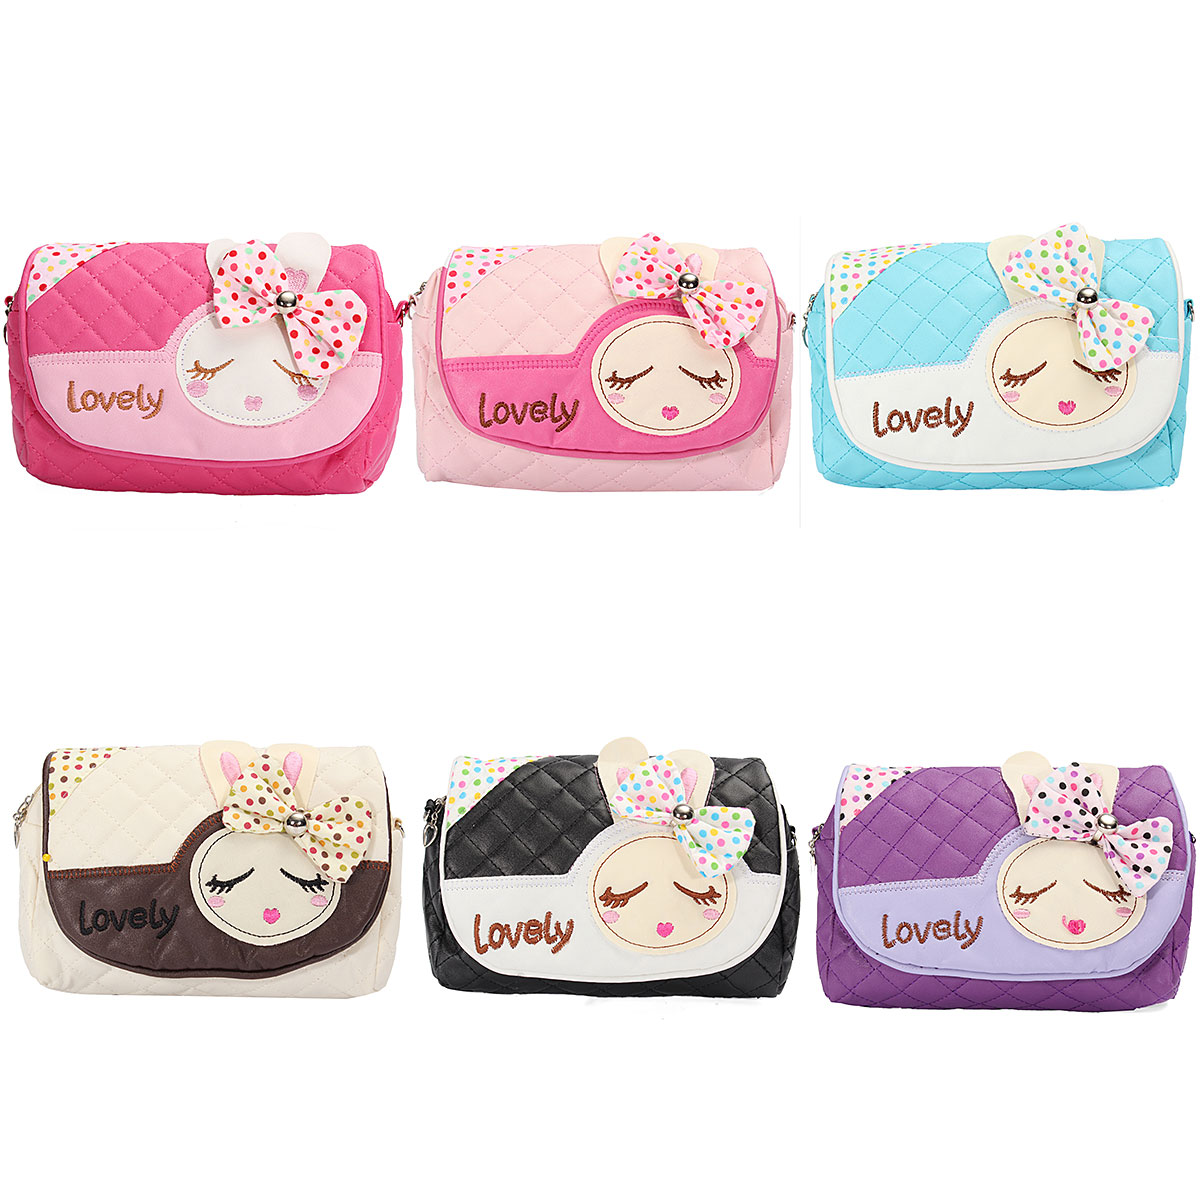 New Kids Children Girls Princess Pretty Lovely Handbag Rabbit Shoulder Bags Messenger Bag